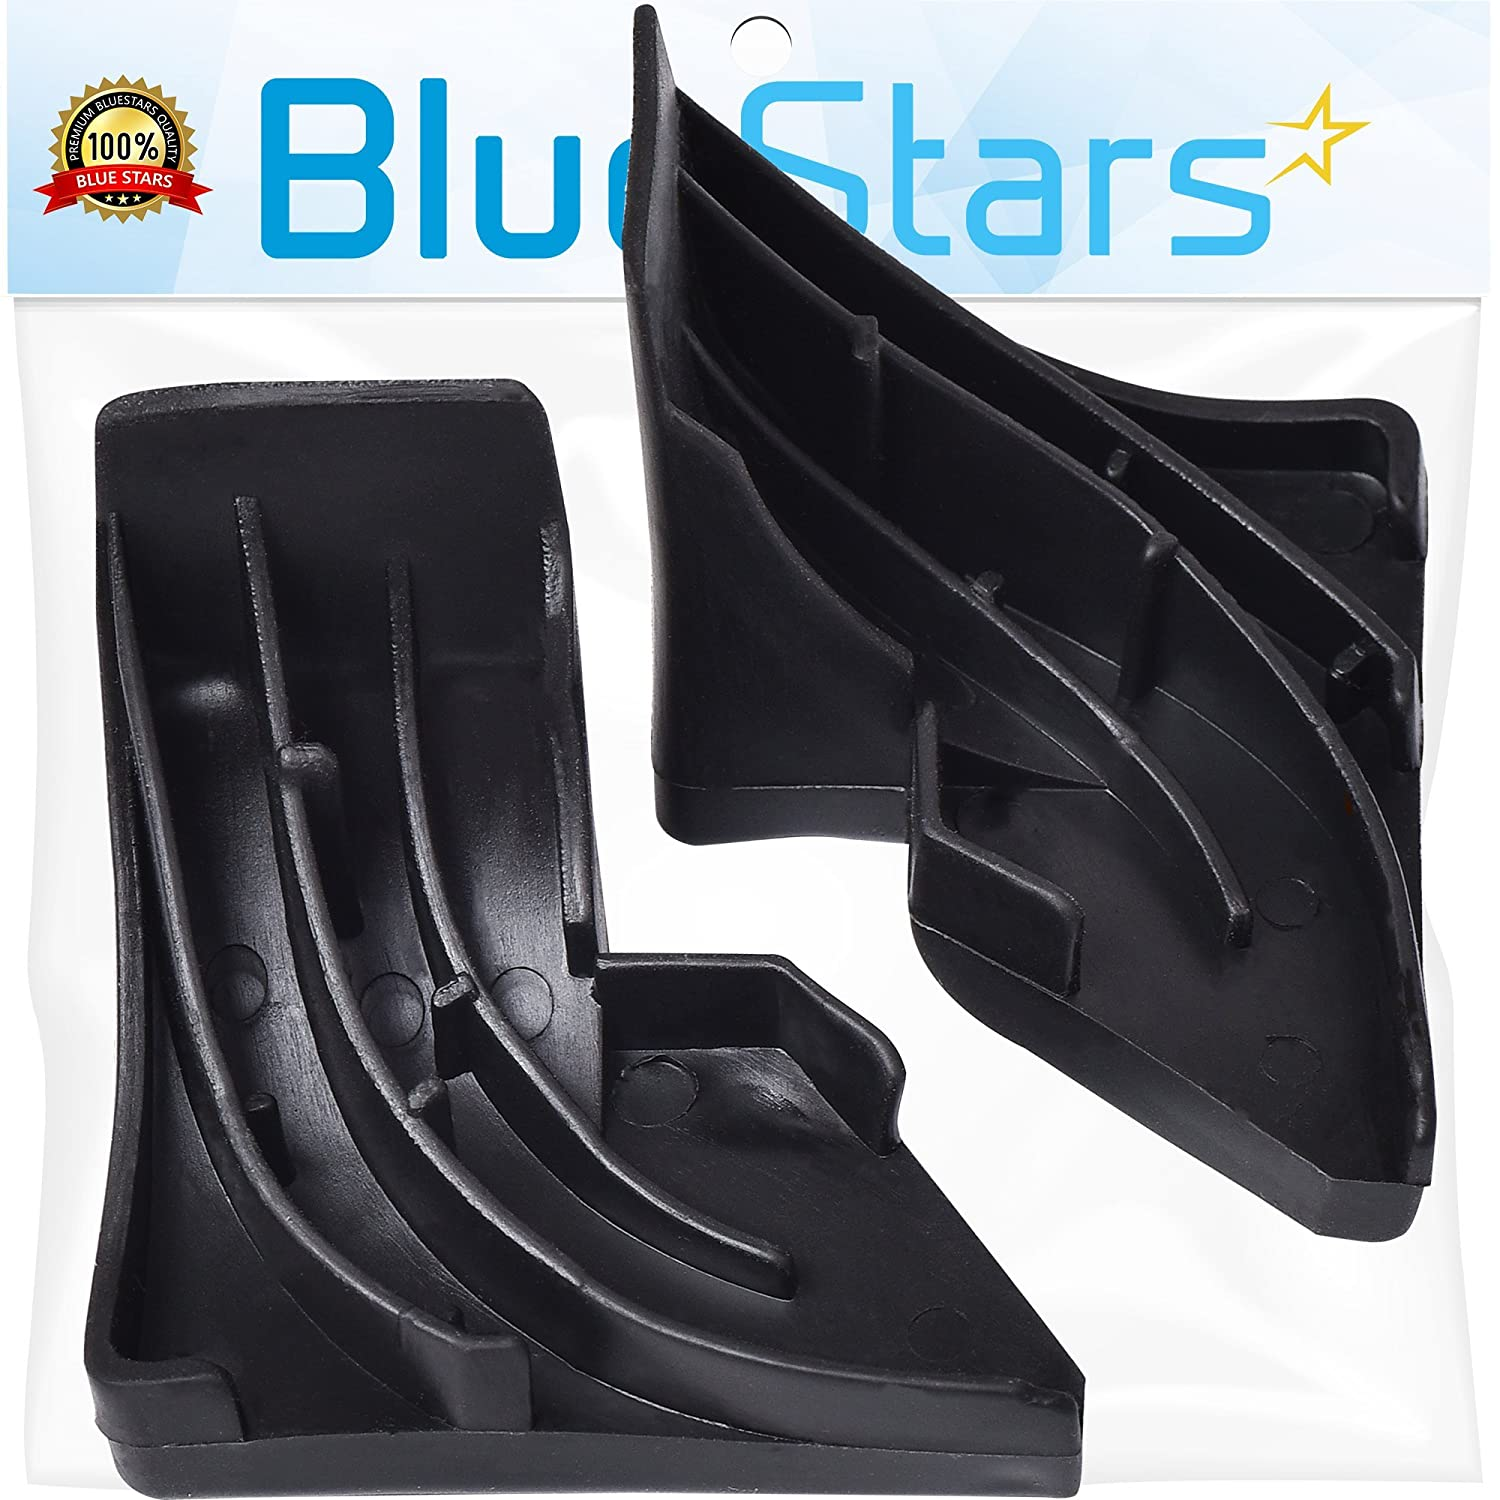 Ultra Durable WD8X227 & WD8X228 Corner Gaskets Replacement Kit by Blue Stars – Exact Fit For GE & Hotpoint Dishwashers - Replaces PS263963 PS263964